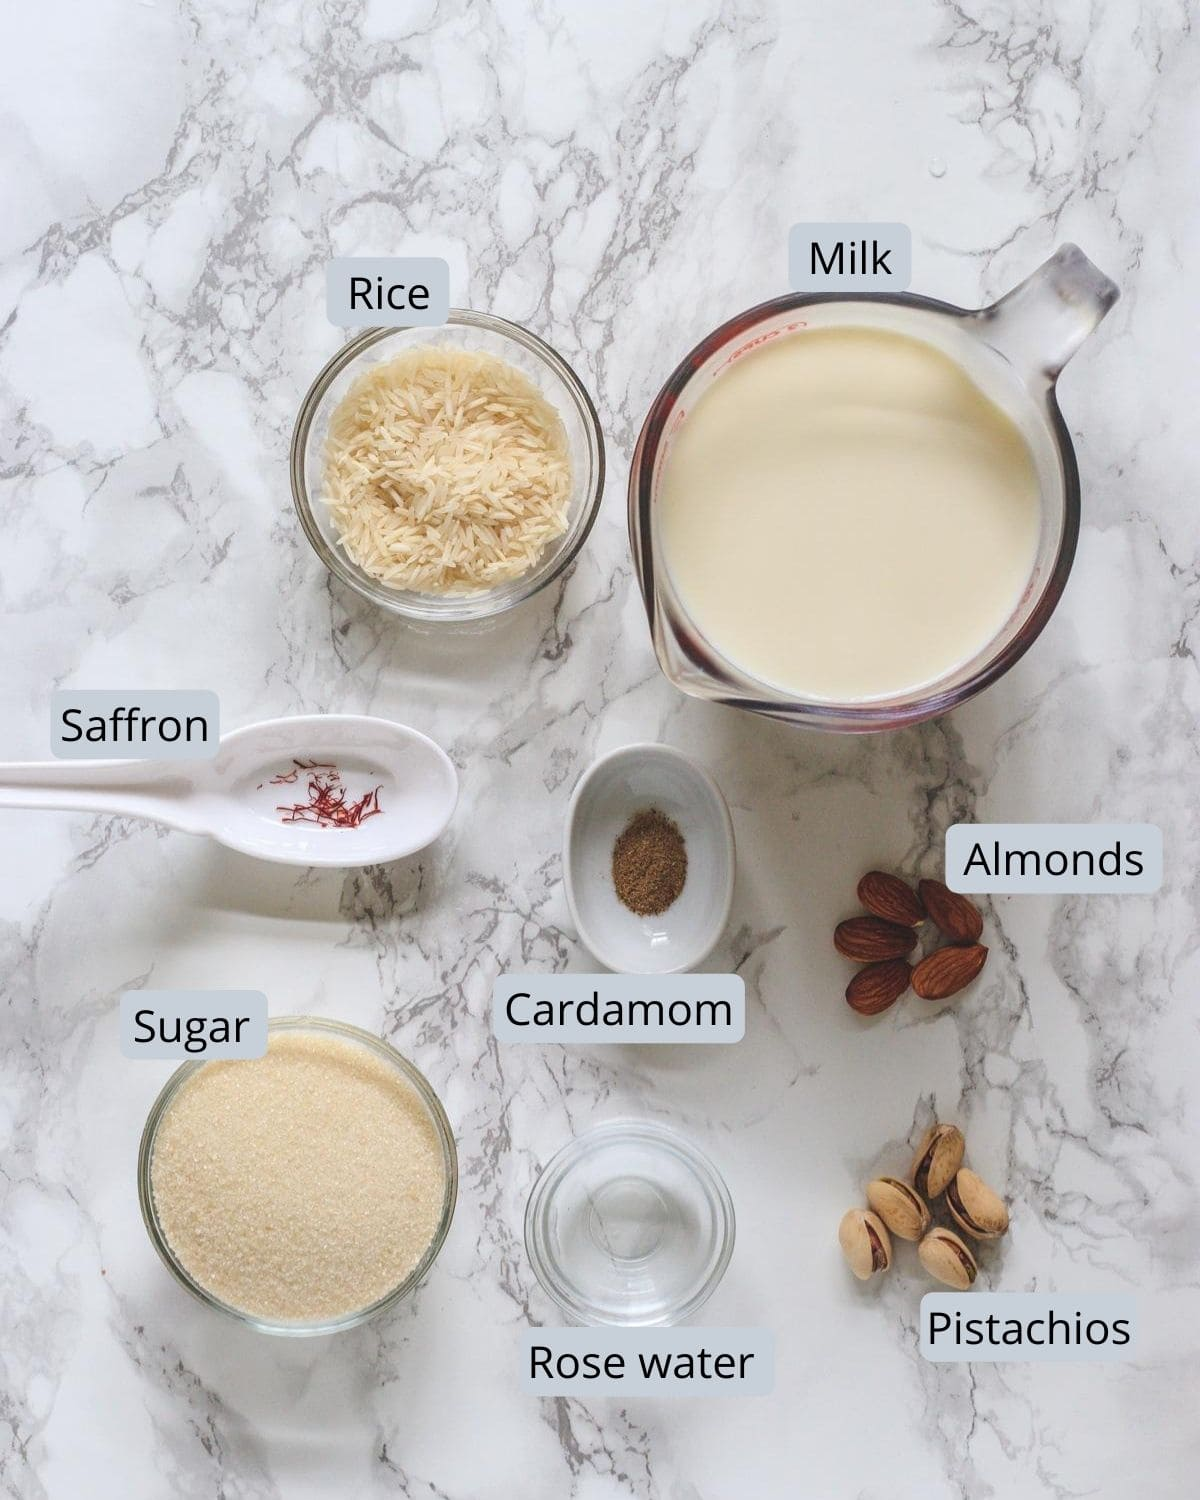 ingredients used in phirni includes milk, rice, sugar, cardamom, saffron, rose water, almonds, pistachios